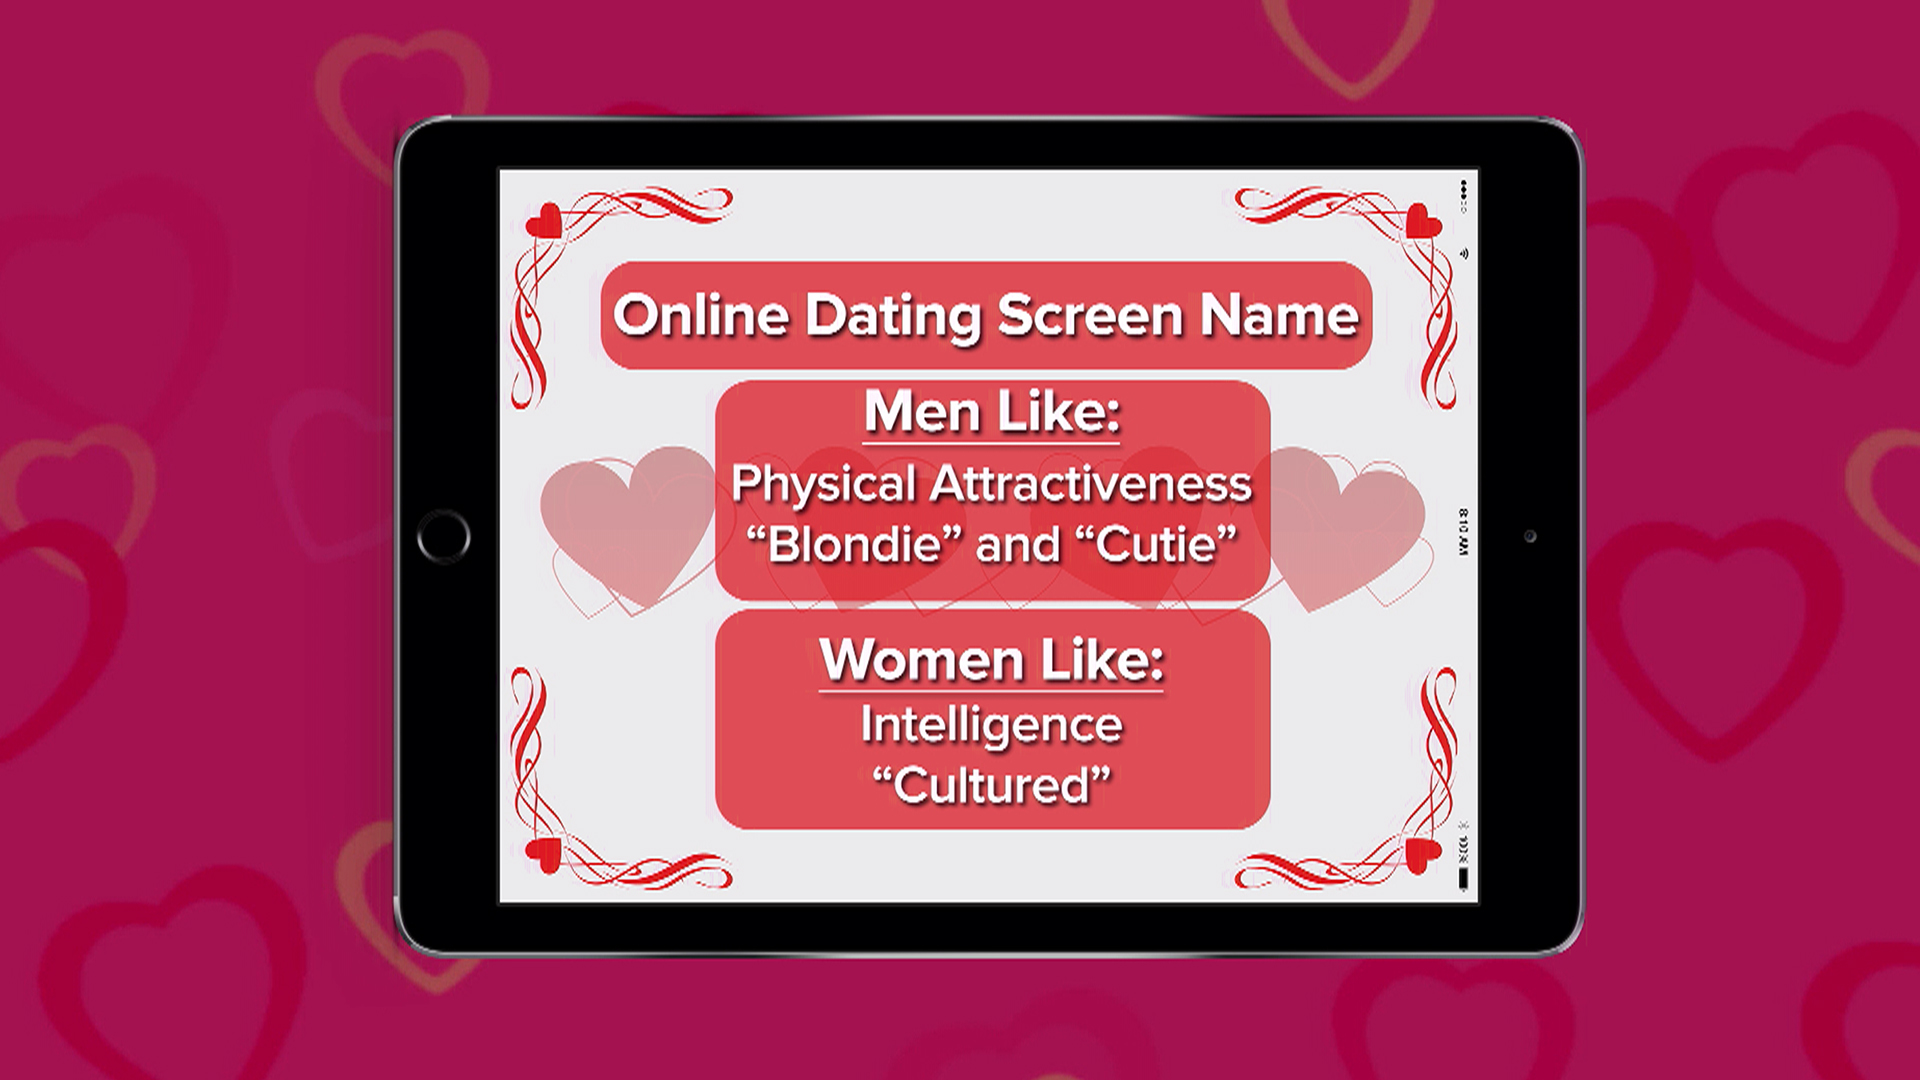 Online dating screen name ideas